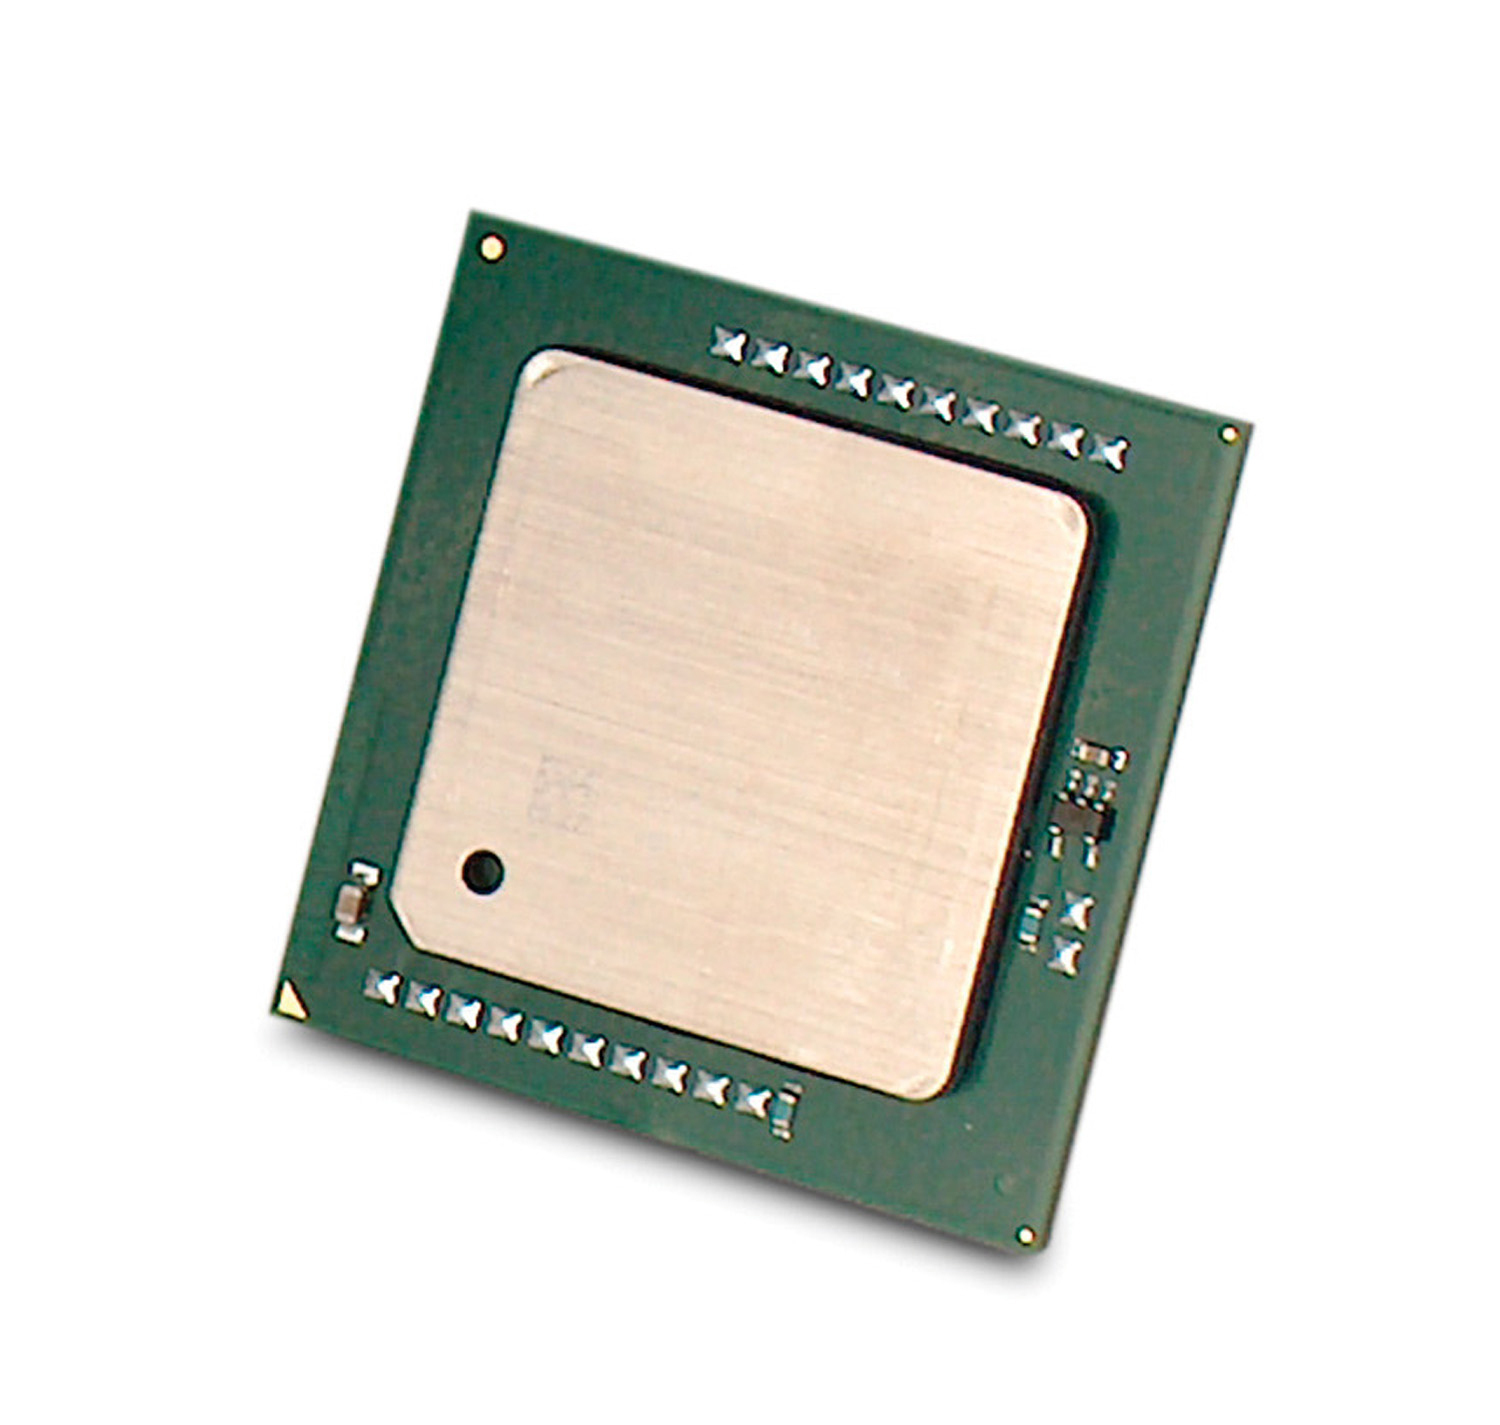 Processor Xeon E5410 Quad Core 2nd Cpu